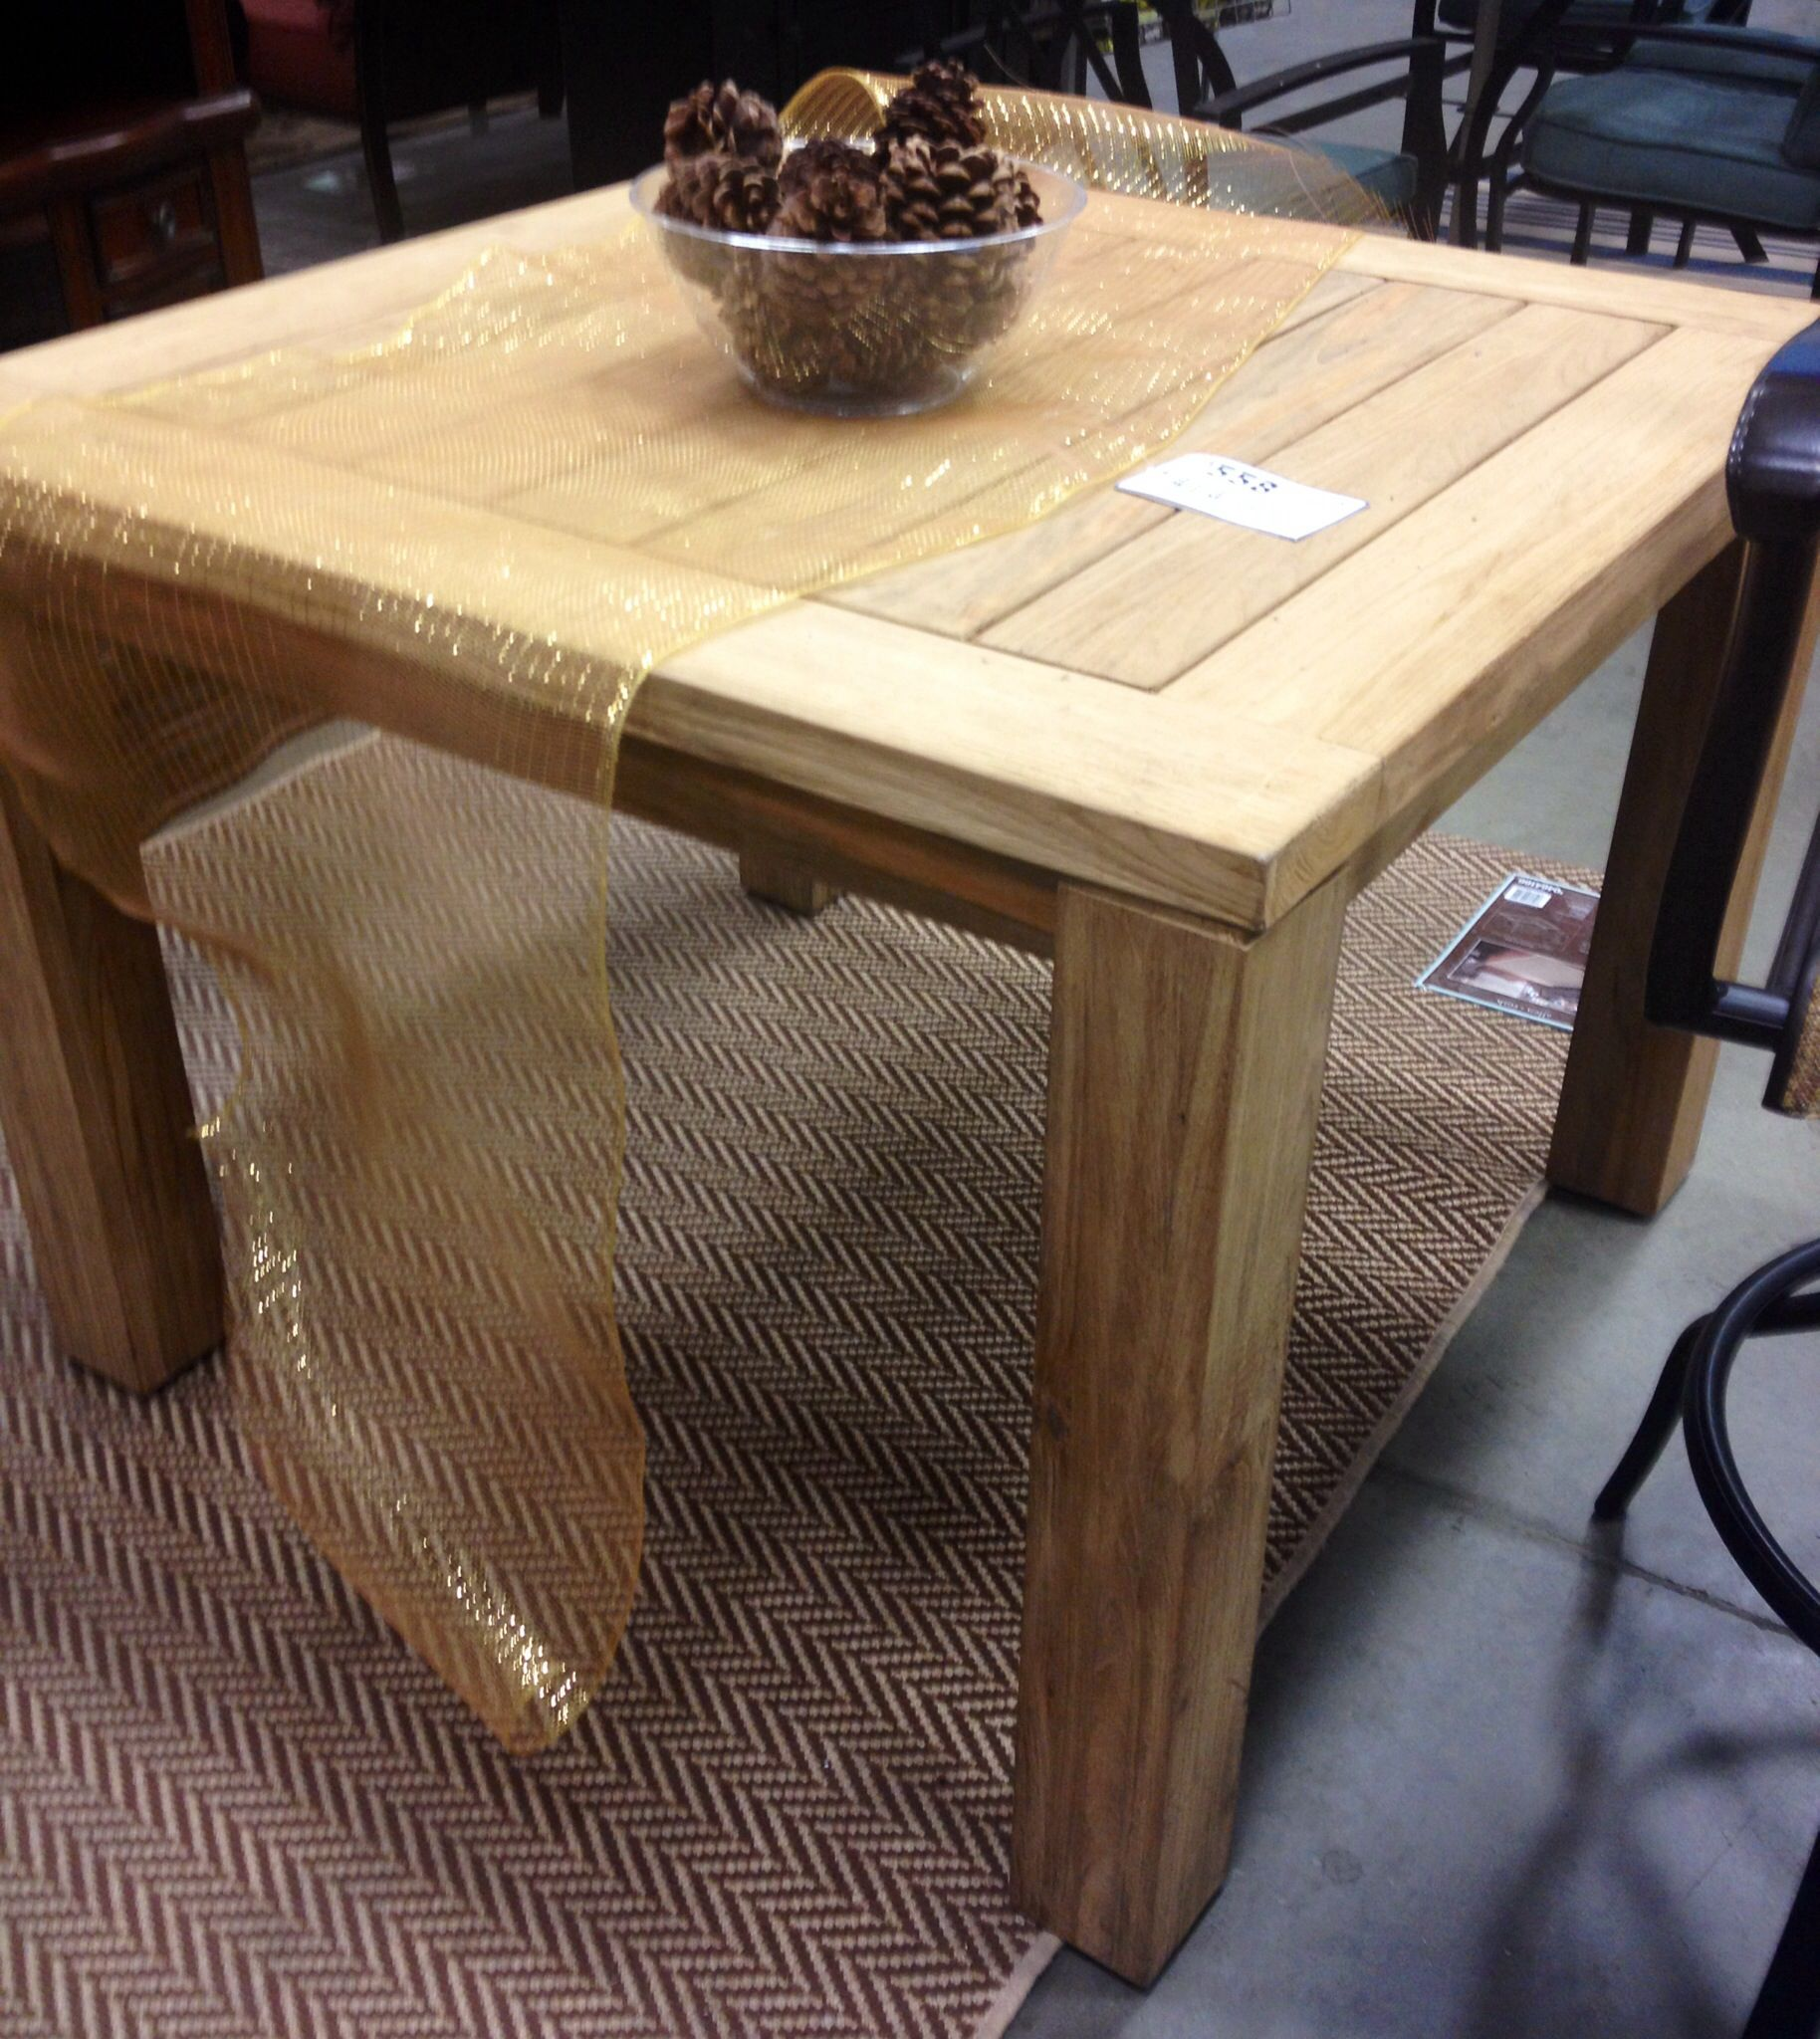 Outdoor living table at Lowes. | Living table, Coffee ... on Lowes Outdoor Living id=49699